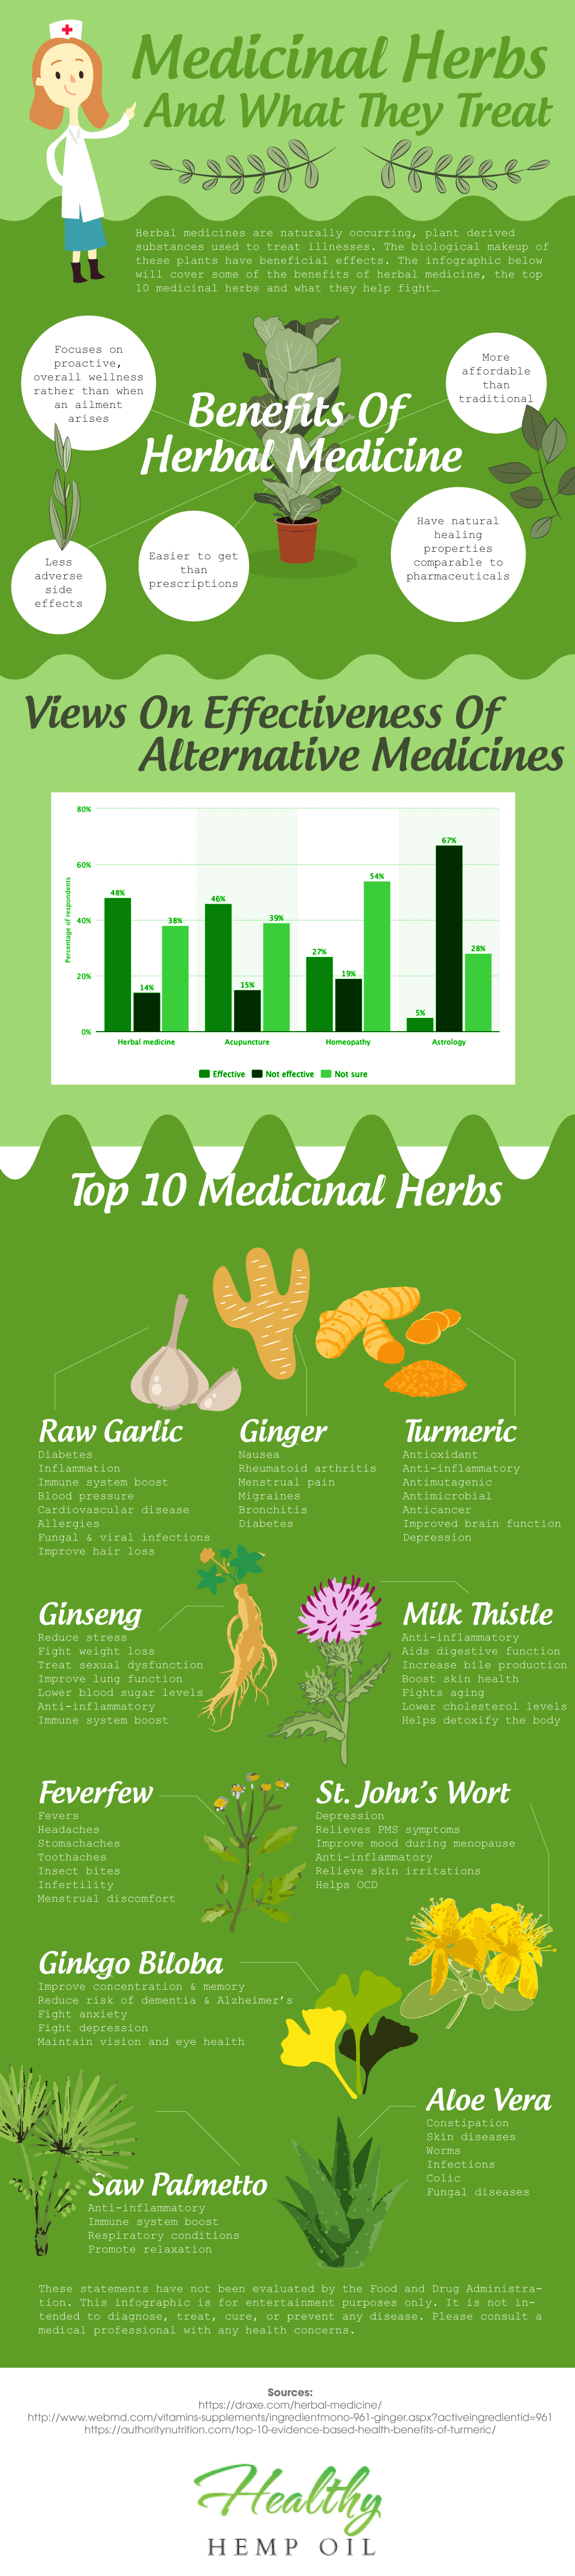 Medicinal-Herbs-And-What-They-Treat